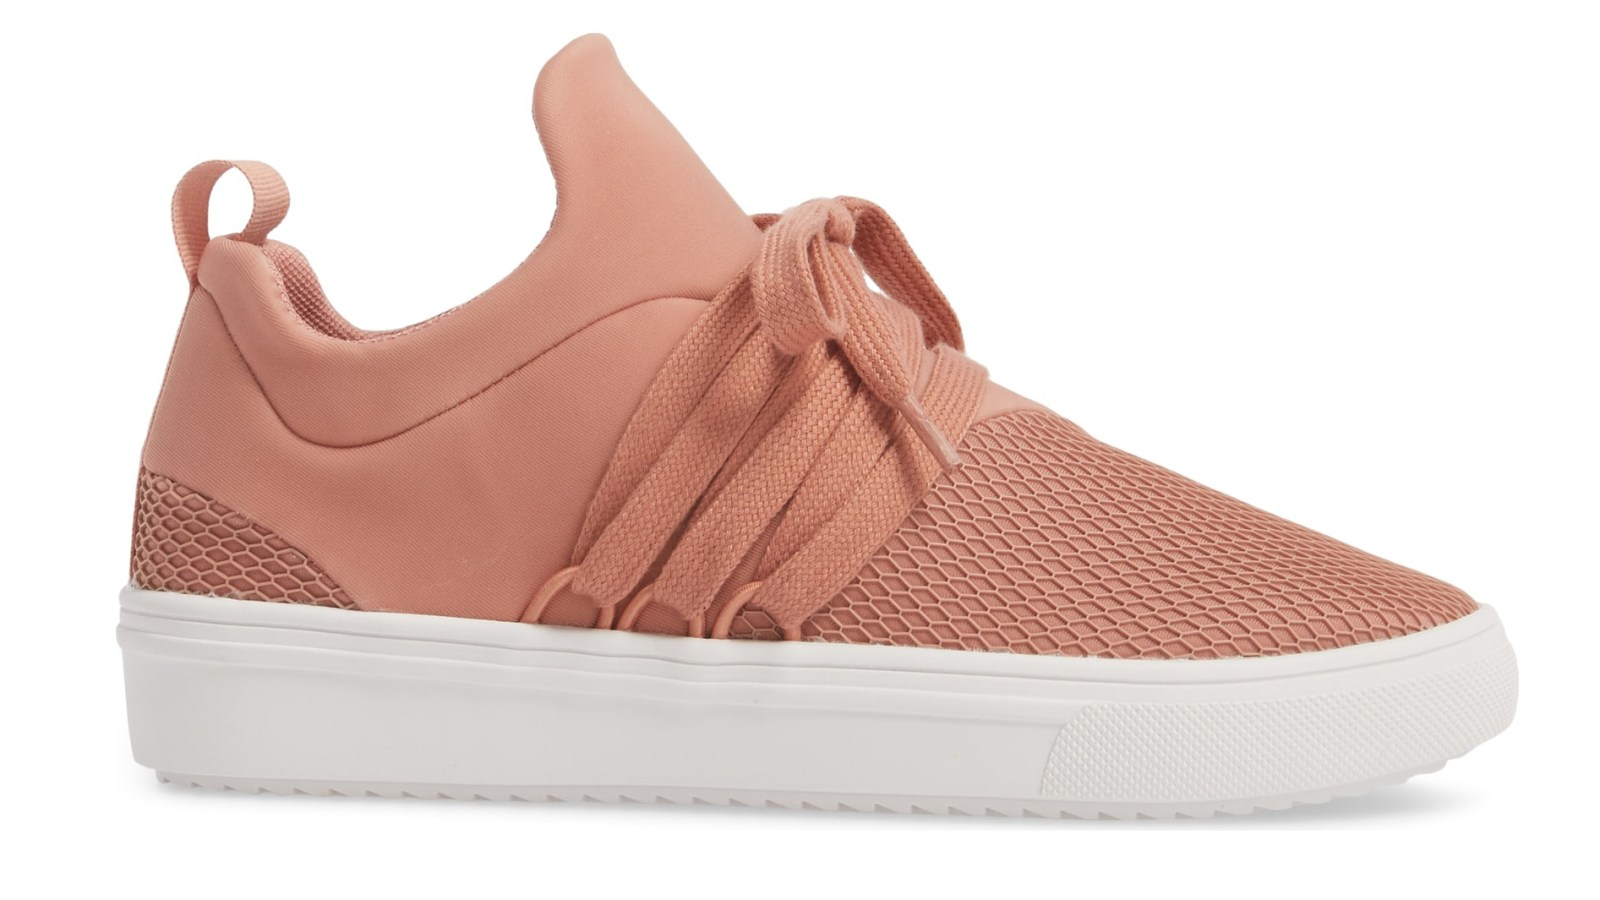 cc6e6a423bd These Comfy Steve Madden Sneakers Are Flying Off the Nordstrom Shelves